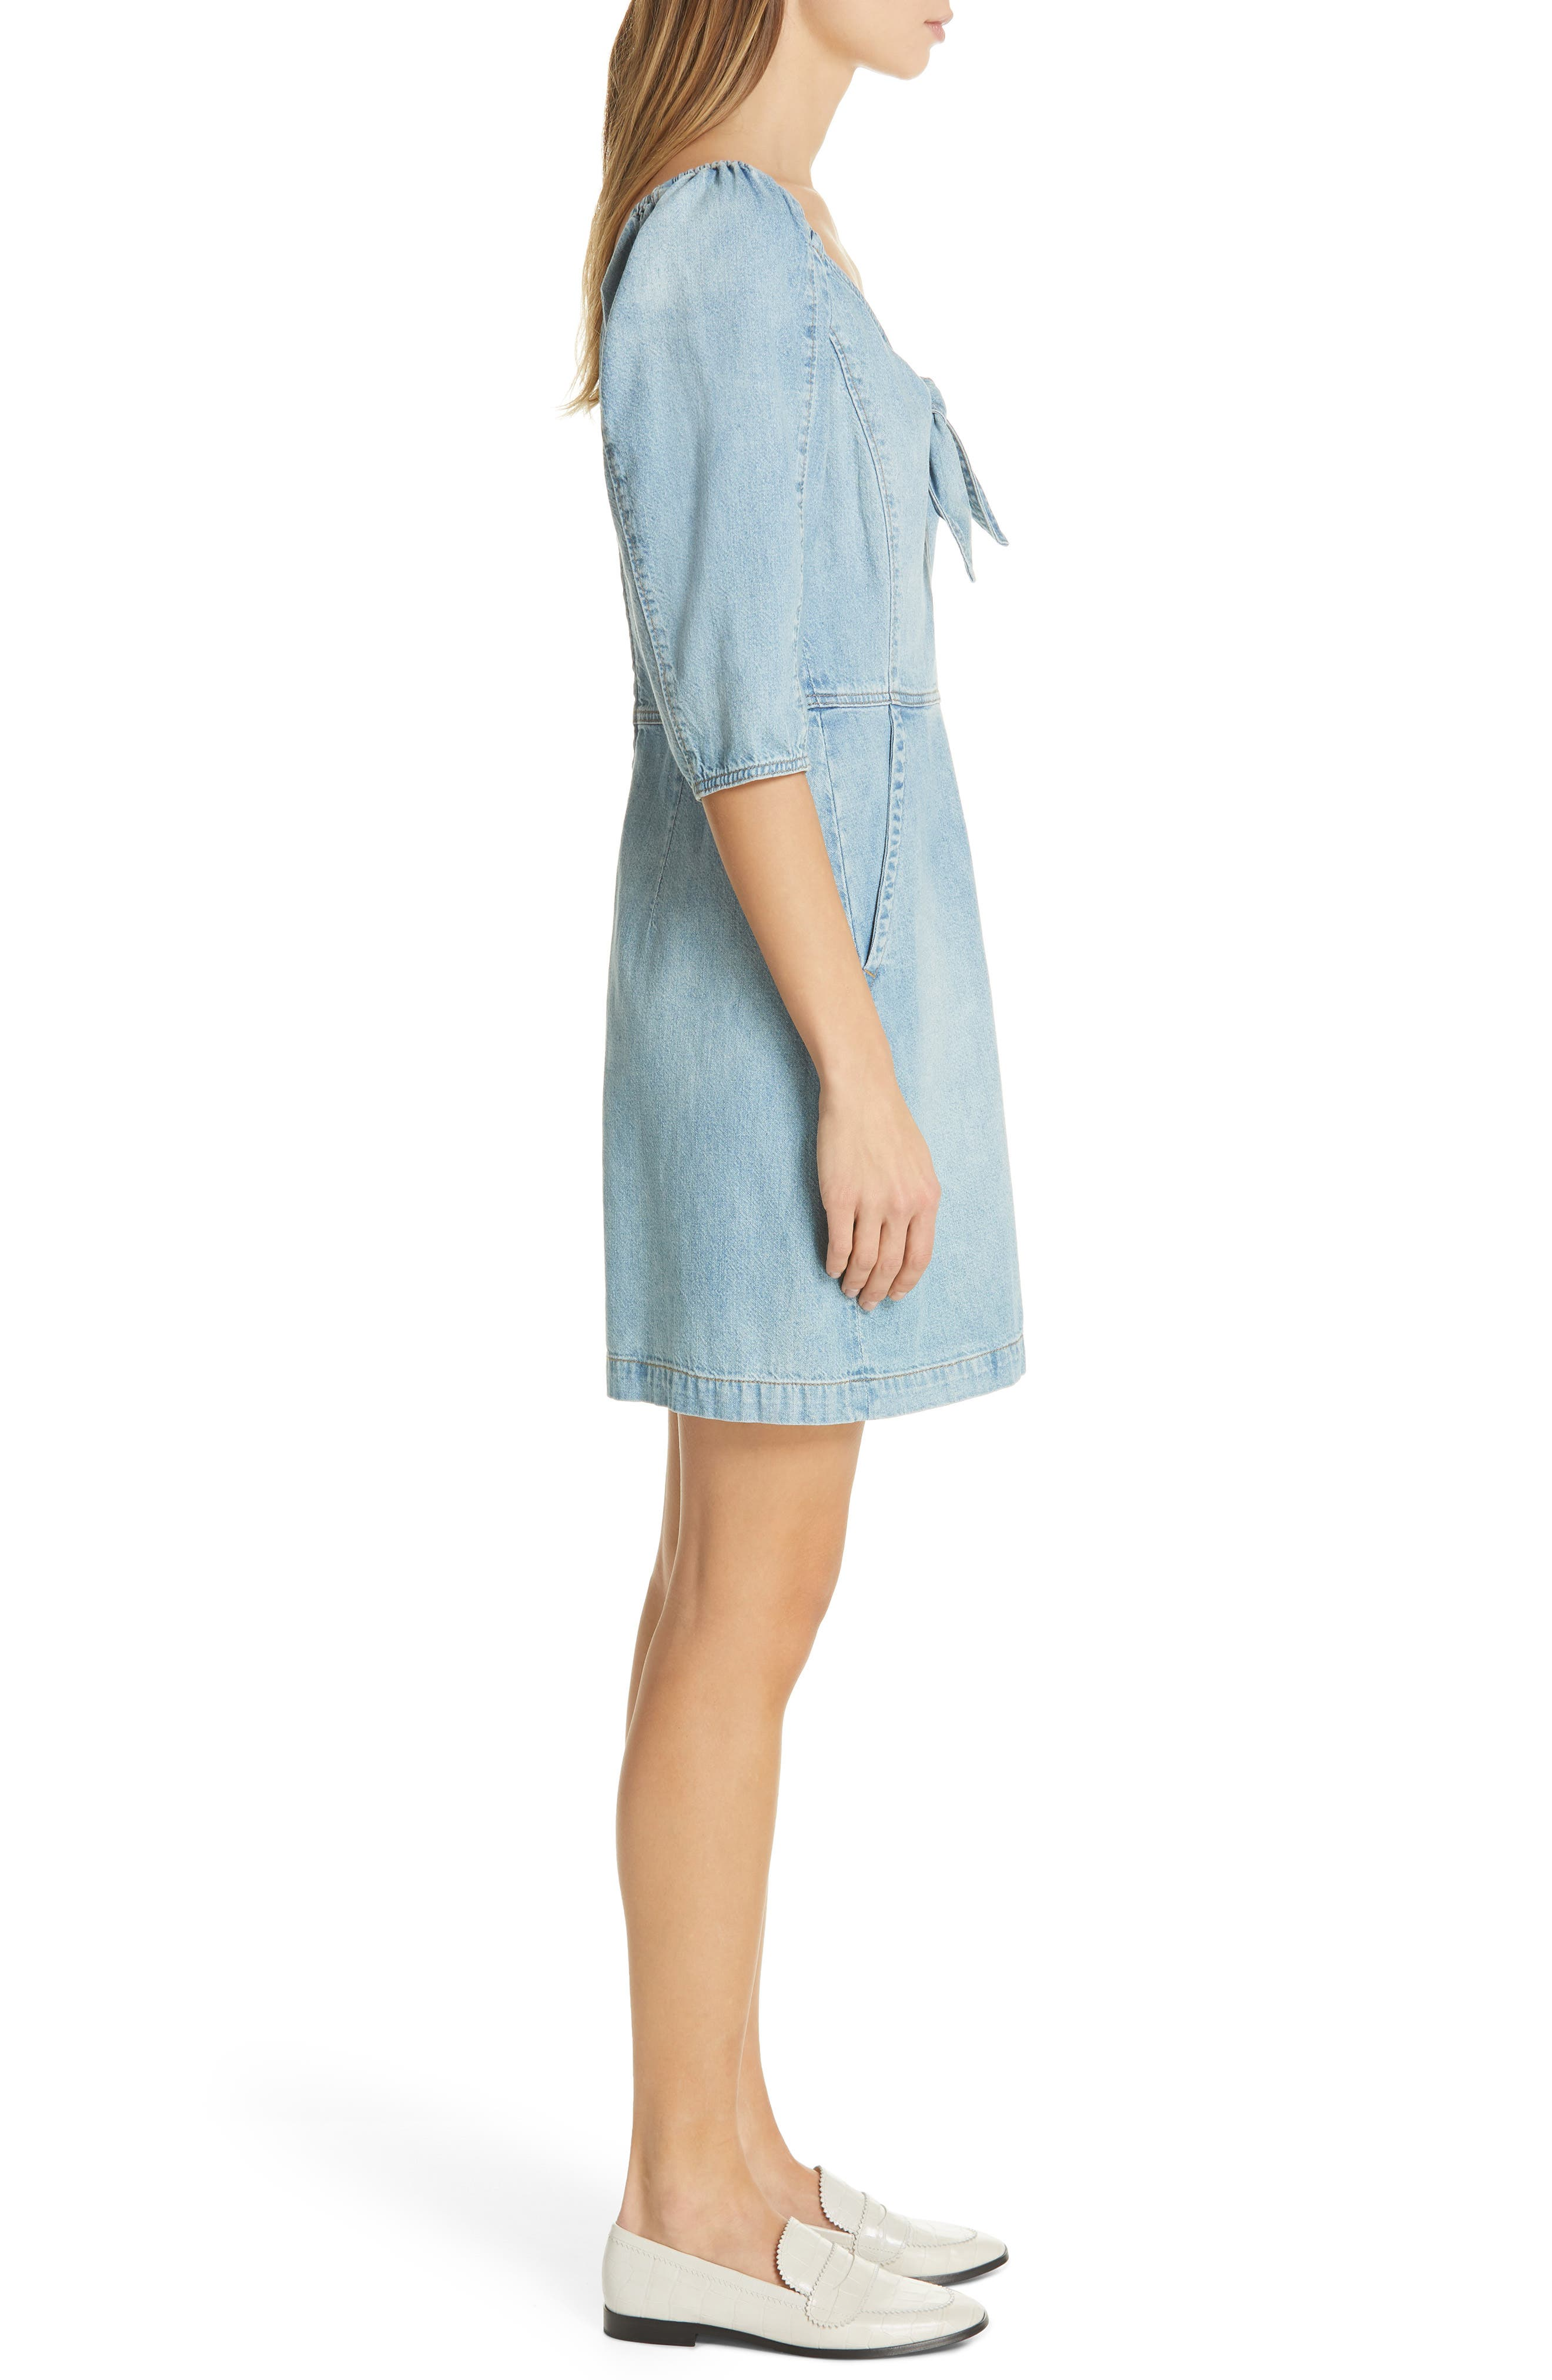 LA VIE REBECCA TAYLOR, Tie Neck Denim Dress, Alternate thumbnail 3, color, FORGET ME NOT WASH